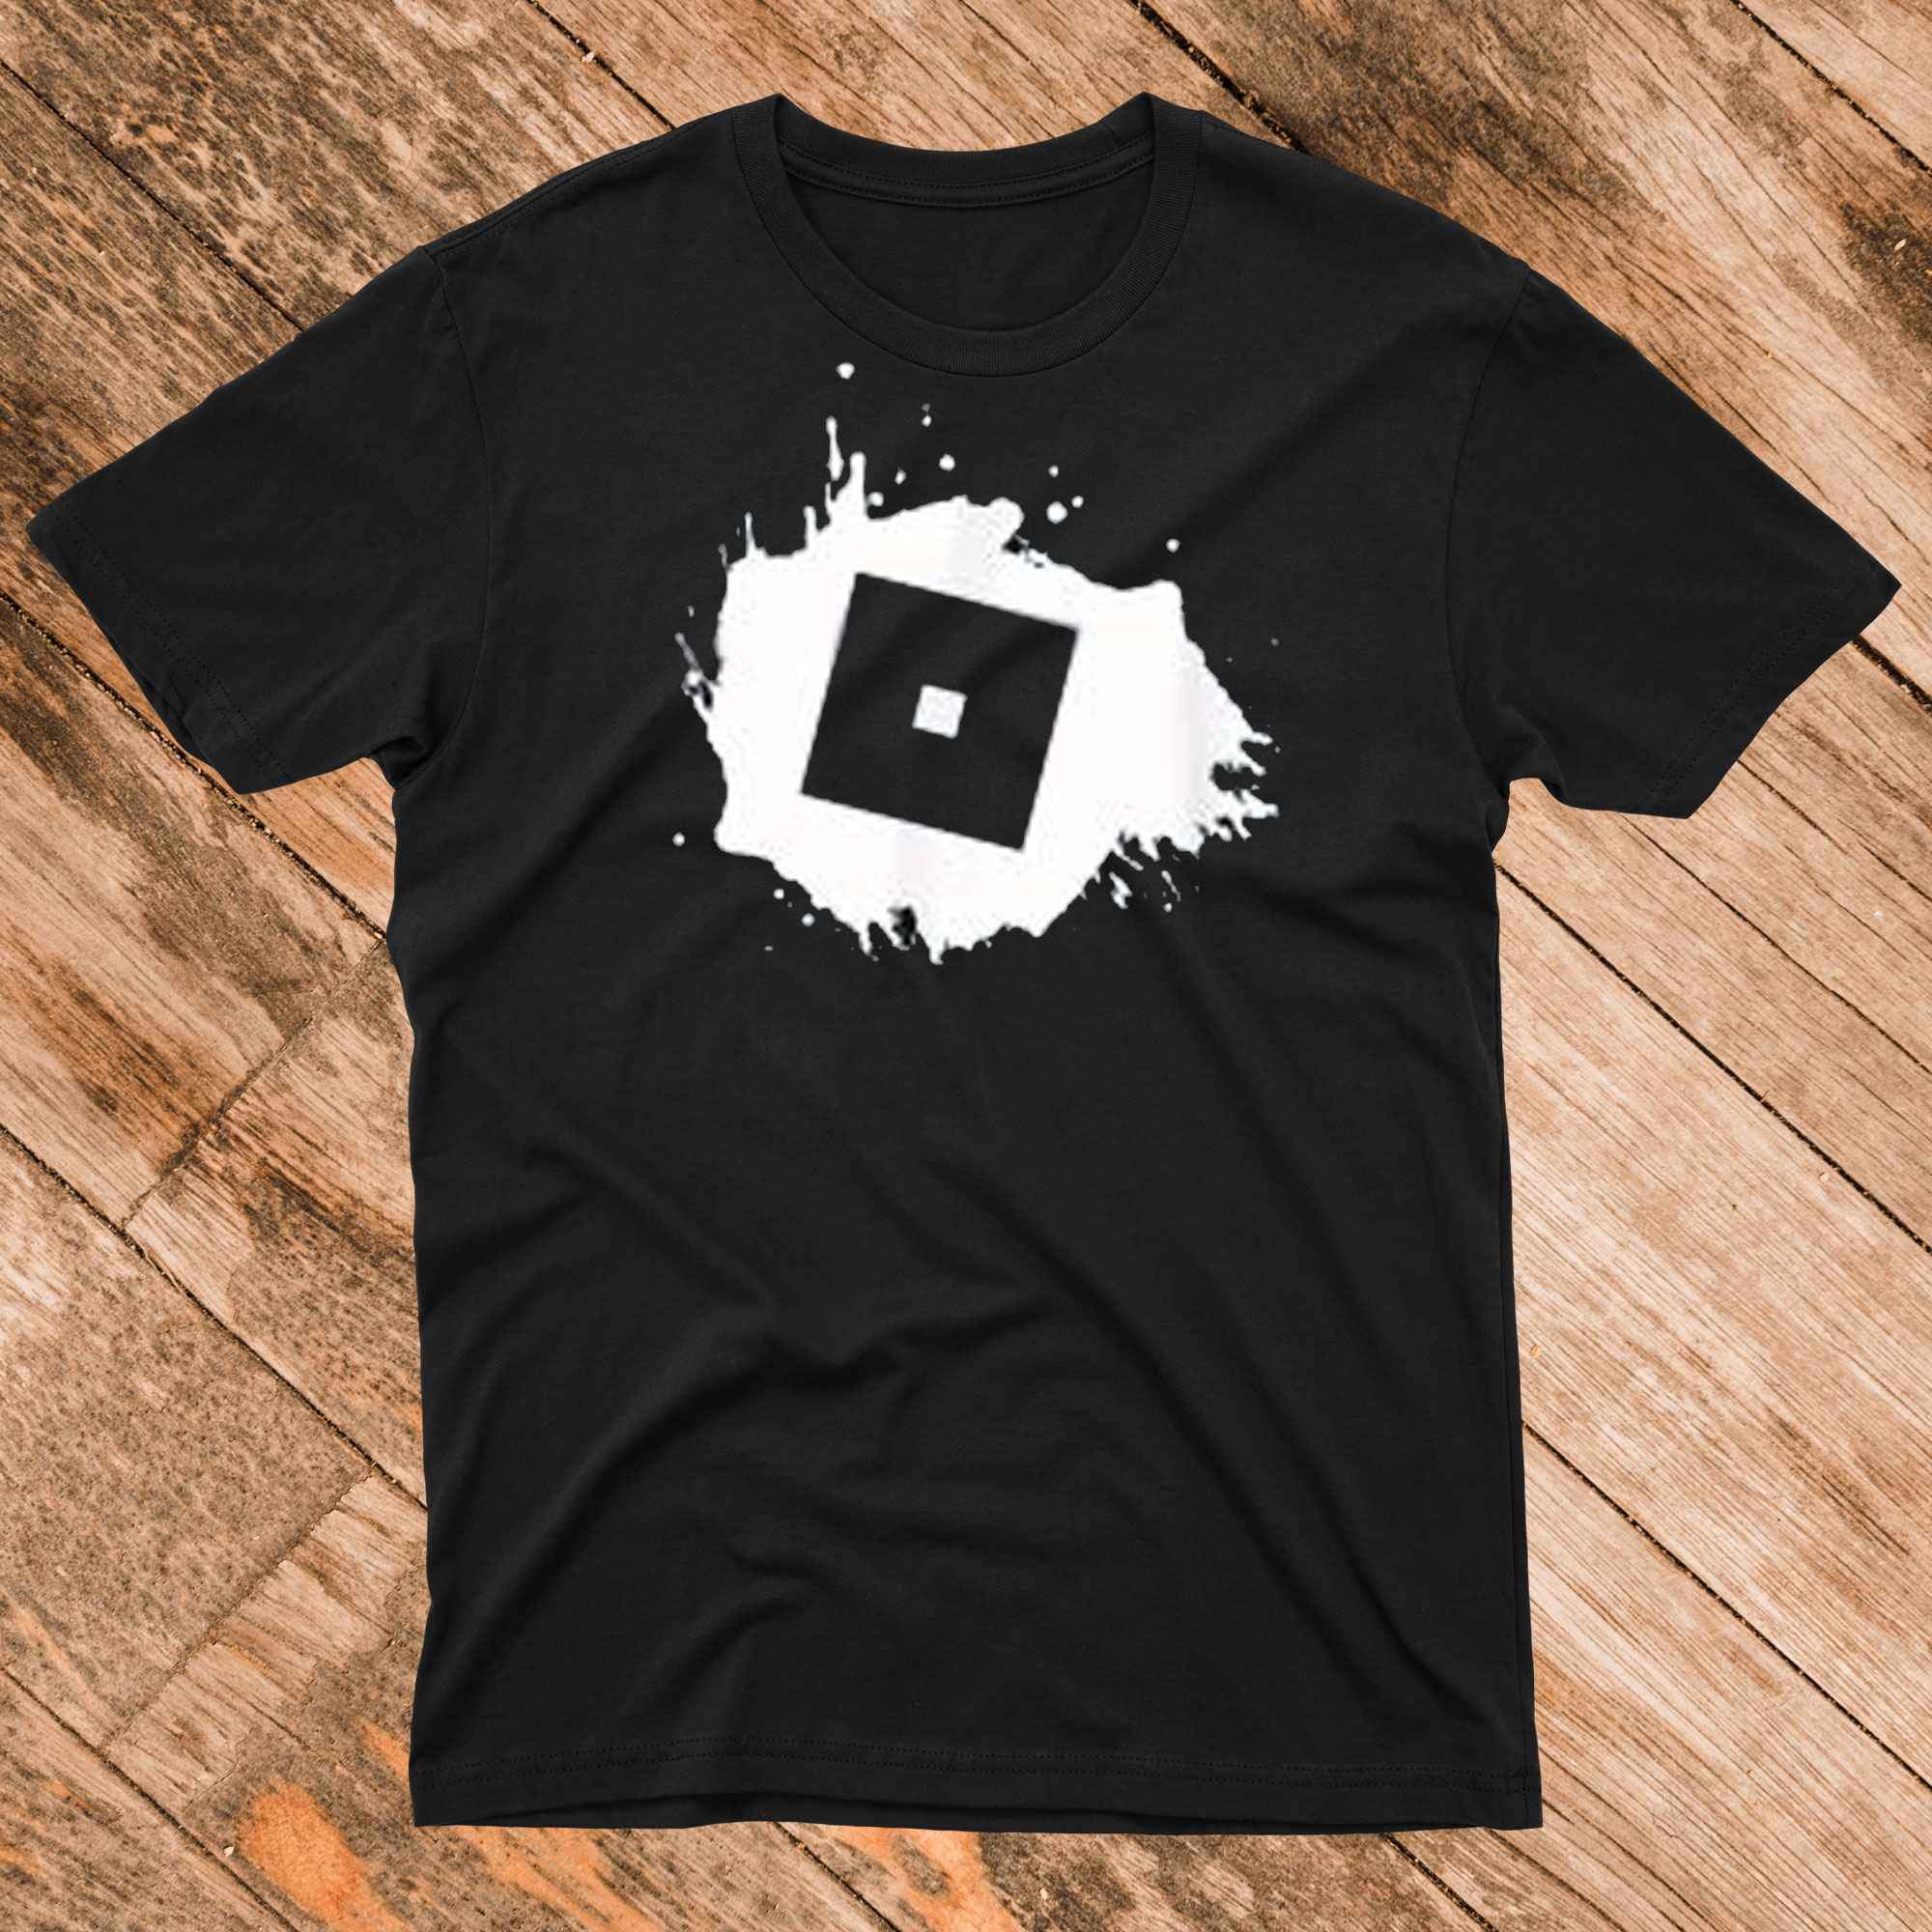 Amazing Good Quality And Trusted Roblox T Shirt